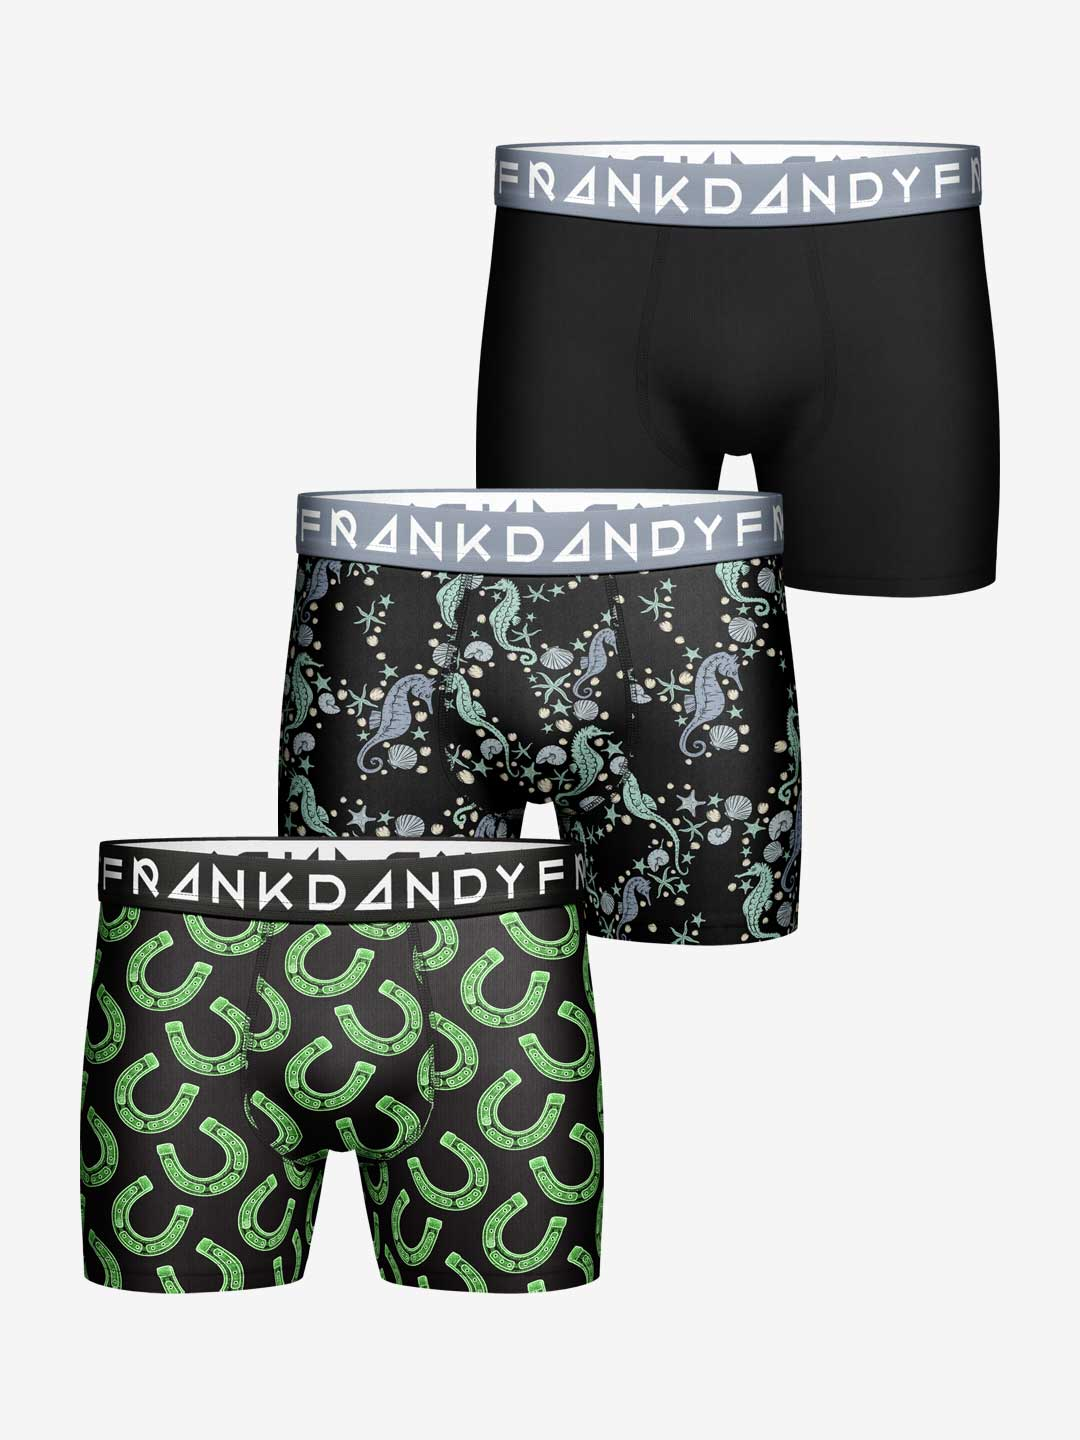 Frank Dandy 3-Pack Lucky Sea Boxer